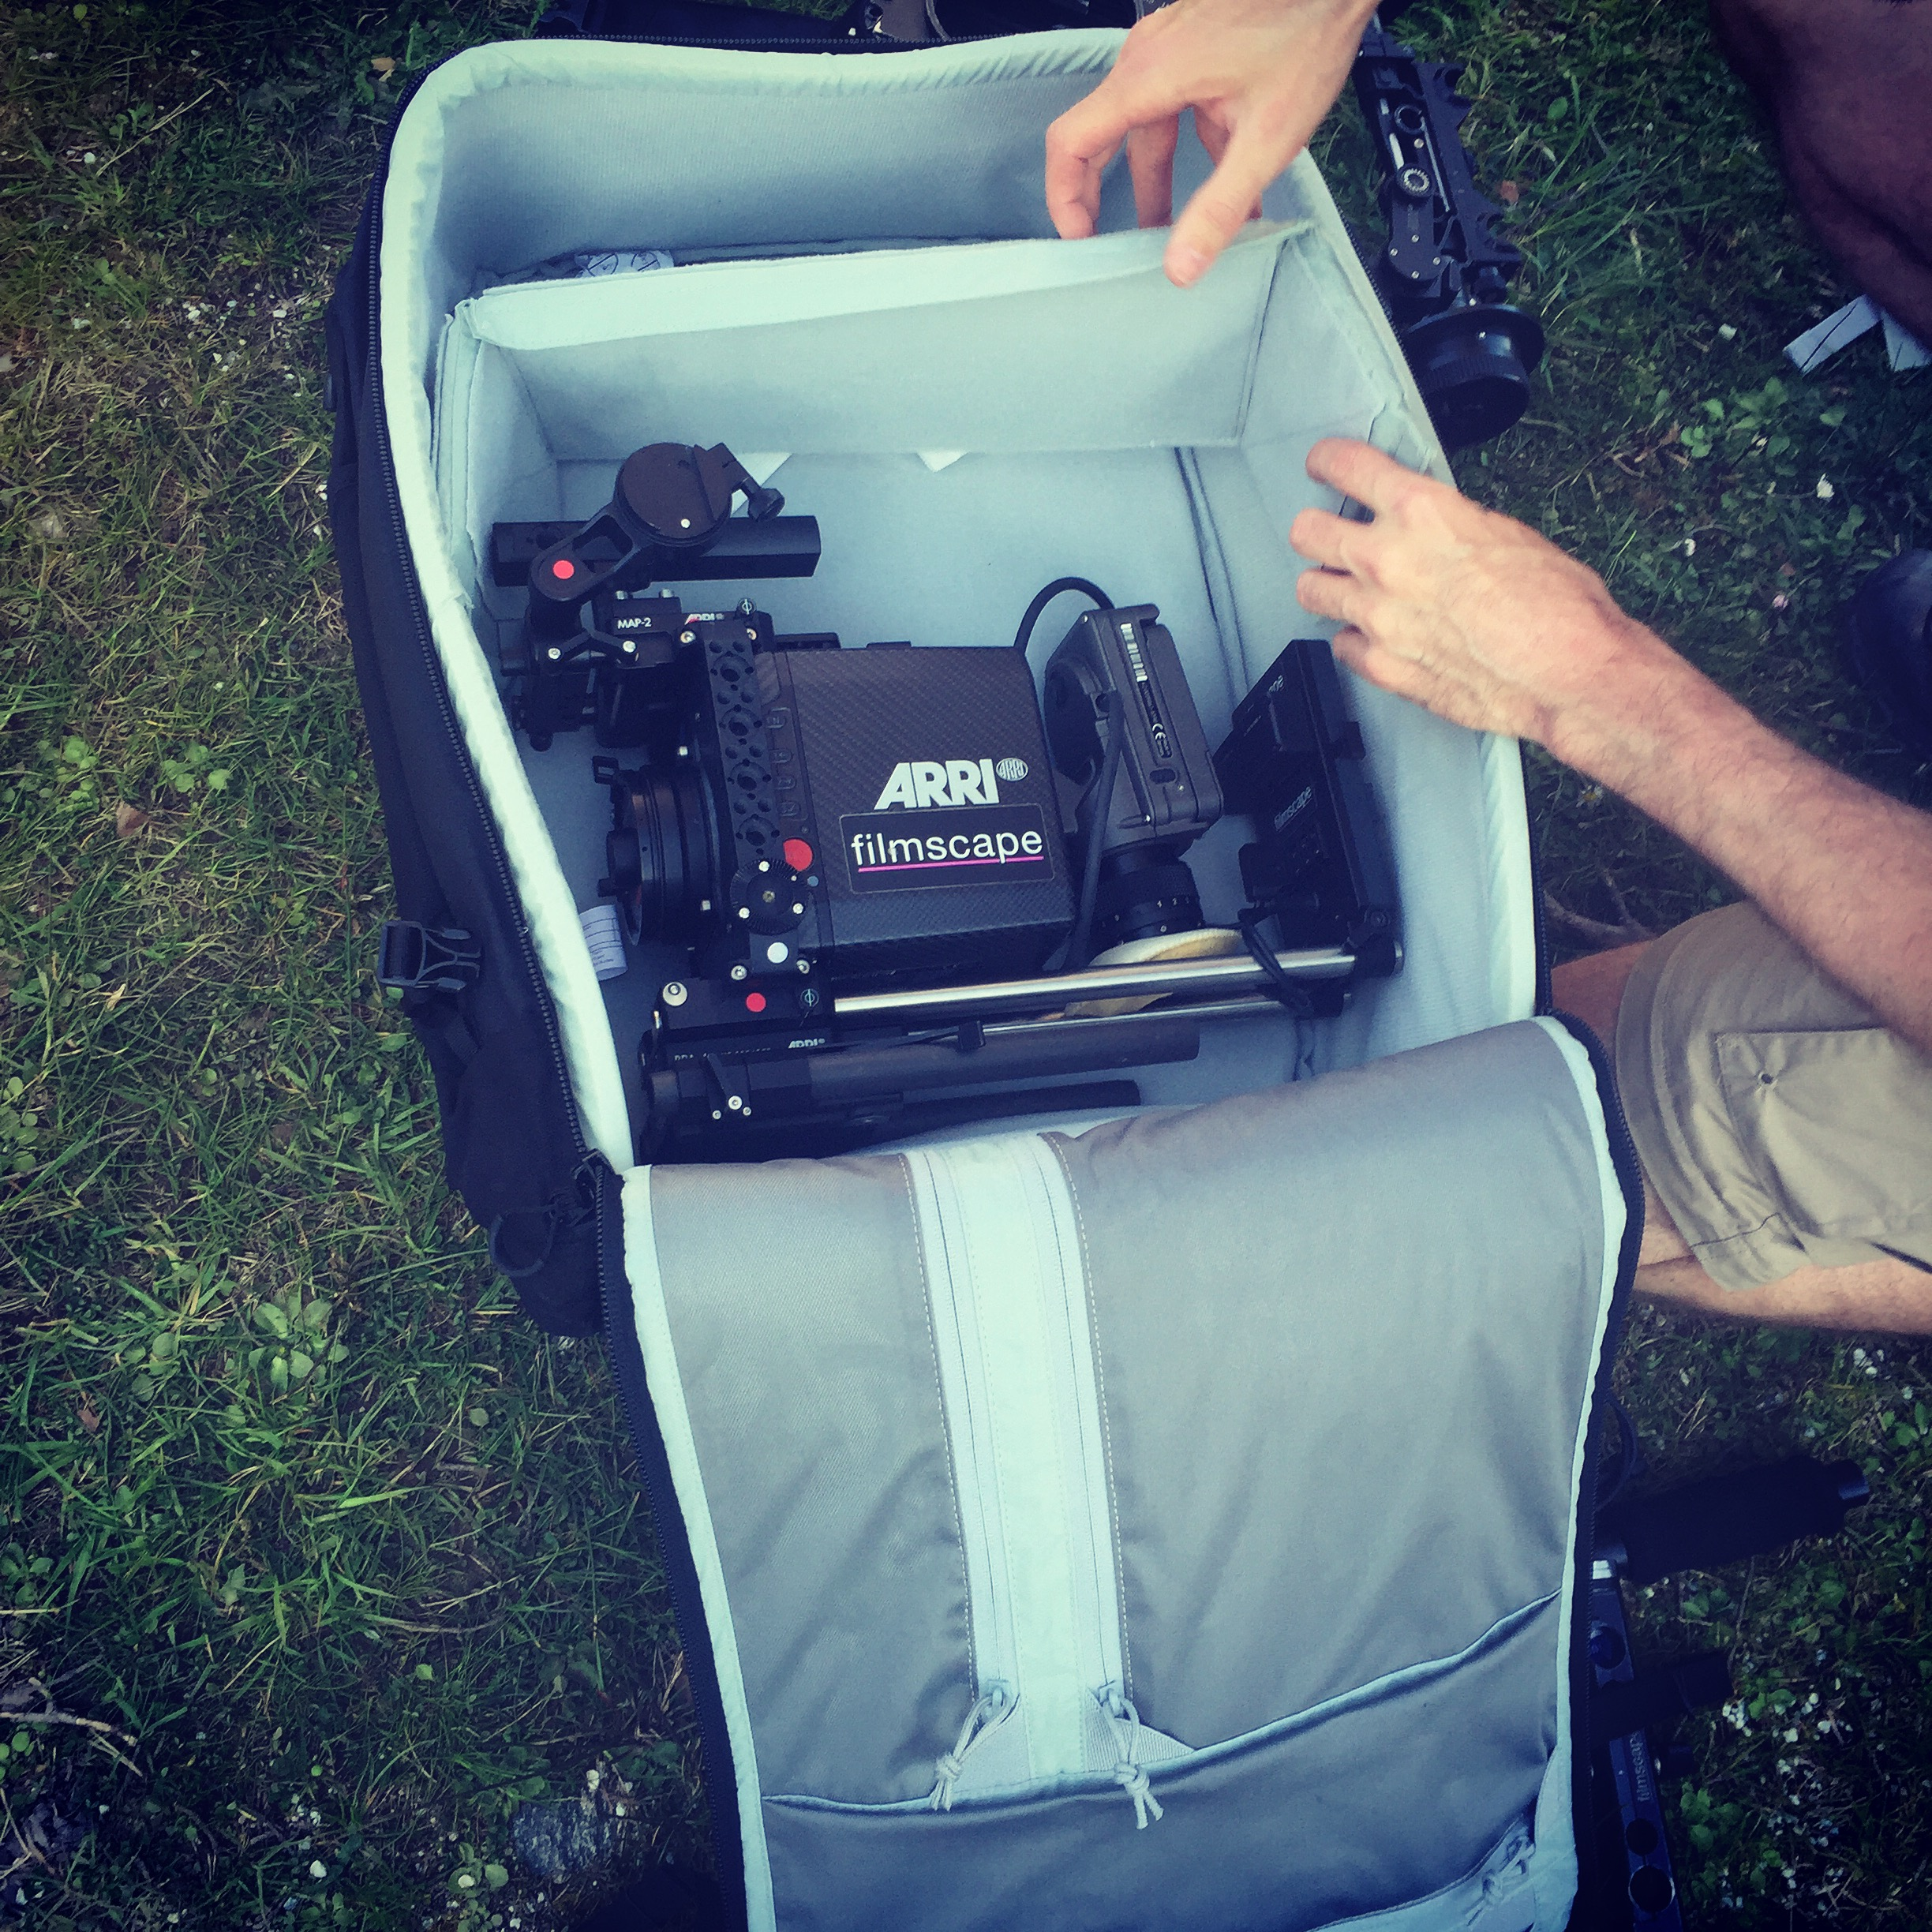 Packing away an Arri Alexa mini for the mountain climb